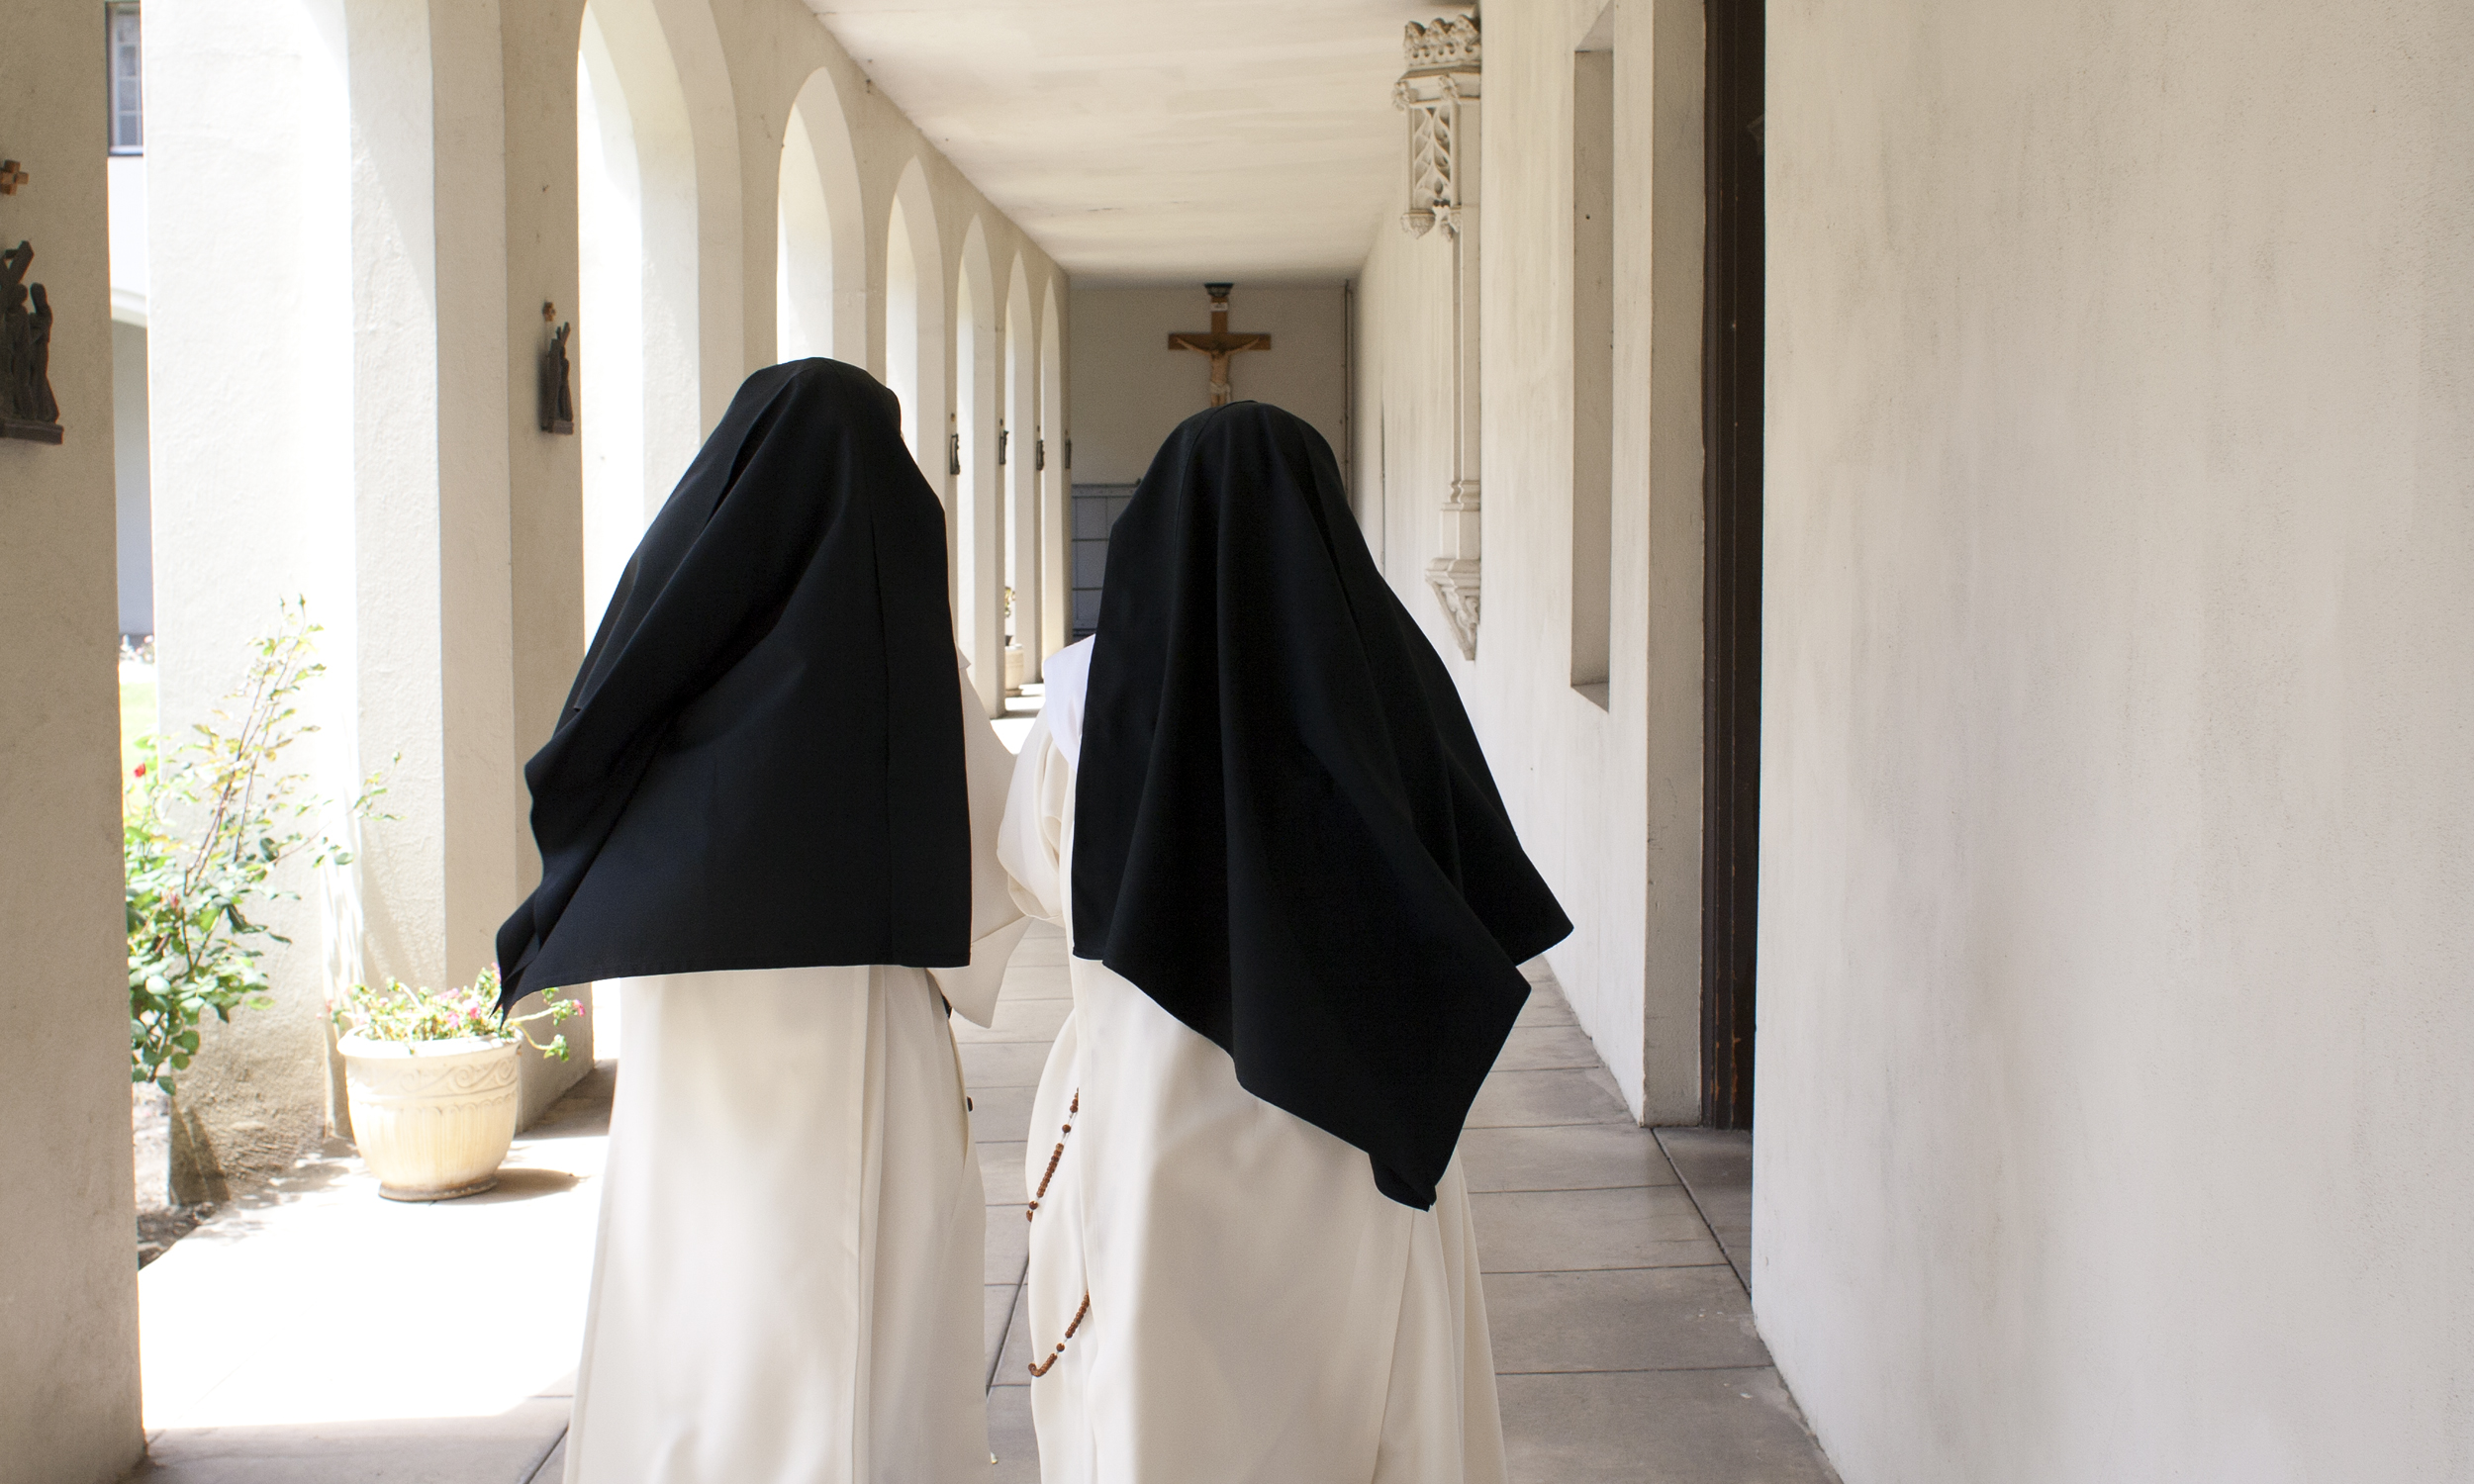 Two nuns in cloister_MG_8294.jpg